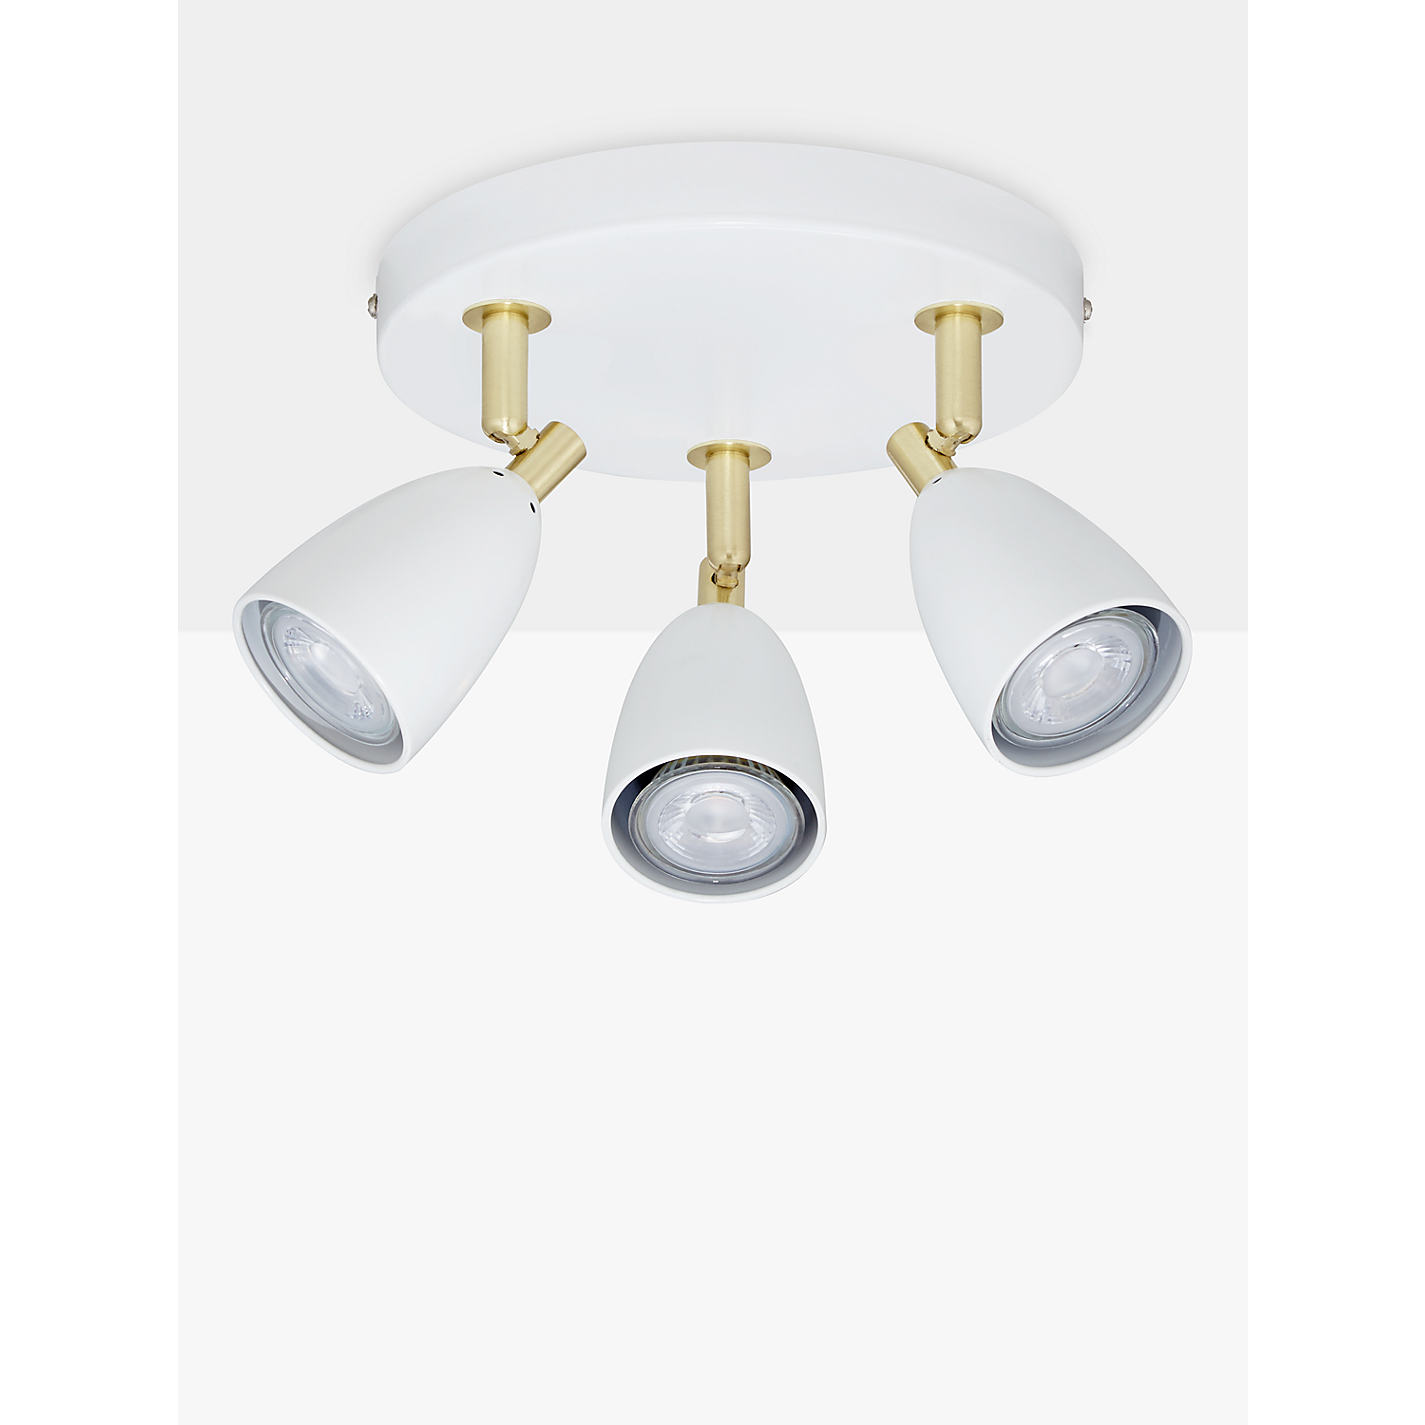 Buy john lewis sasha gu10 led spotlight plate 3 light ivory buy john lewis sasha gu10 led spotlight plate 3 light ivorybrass online aloadofball Image collections